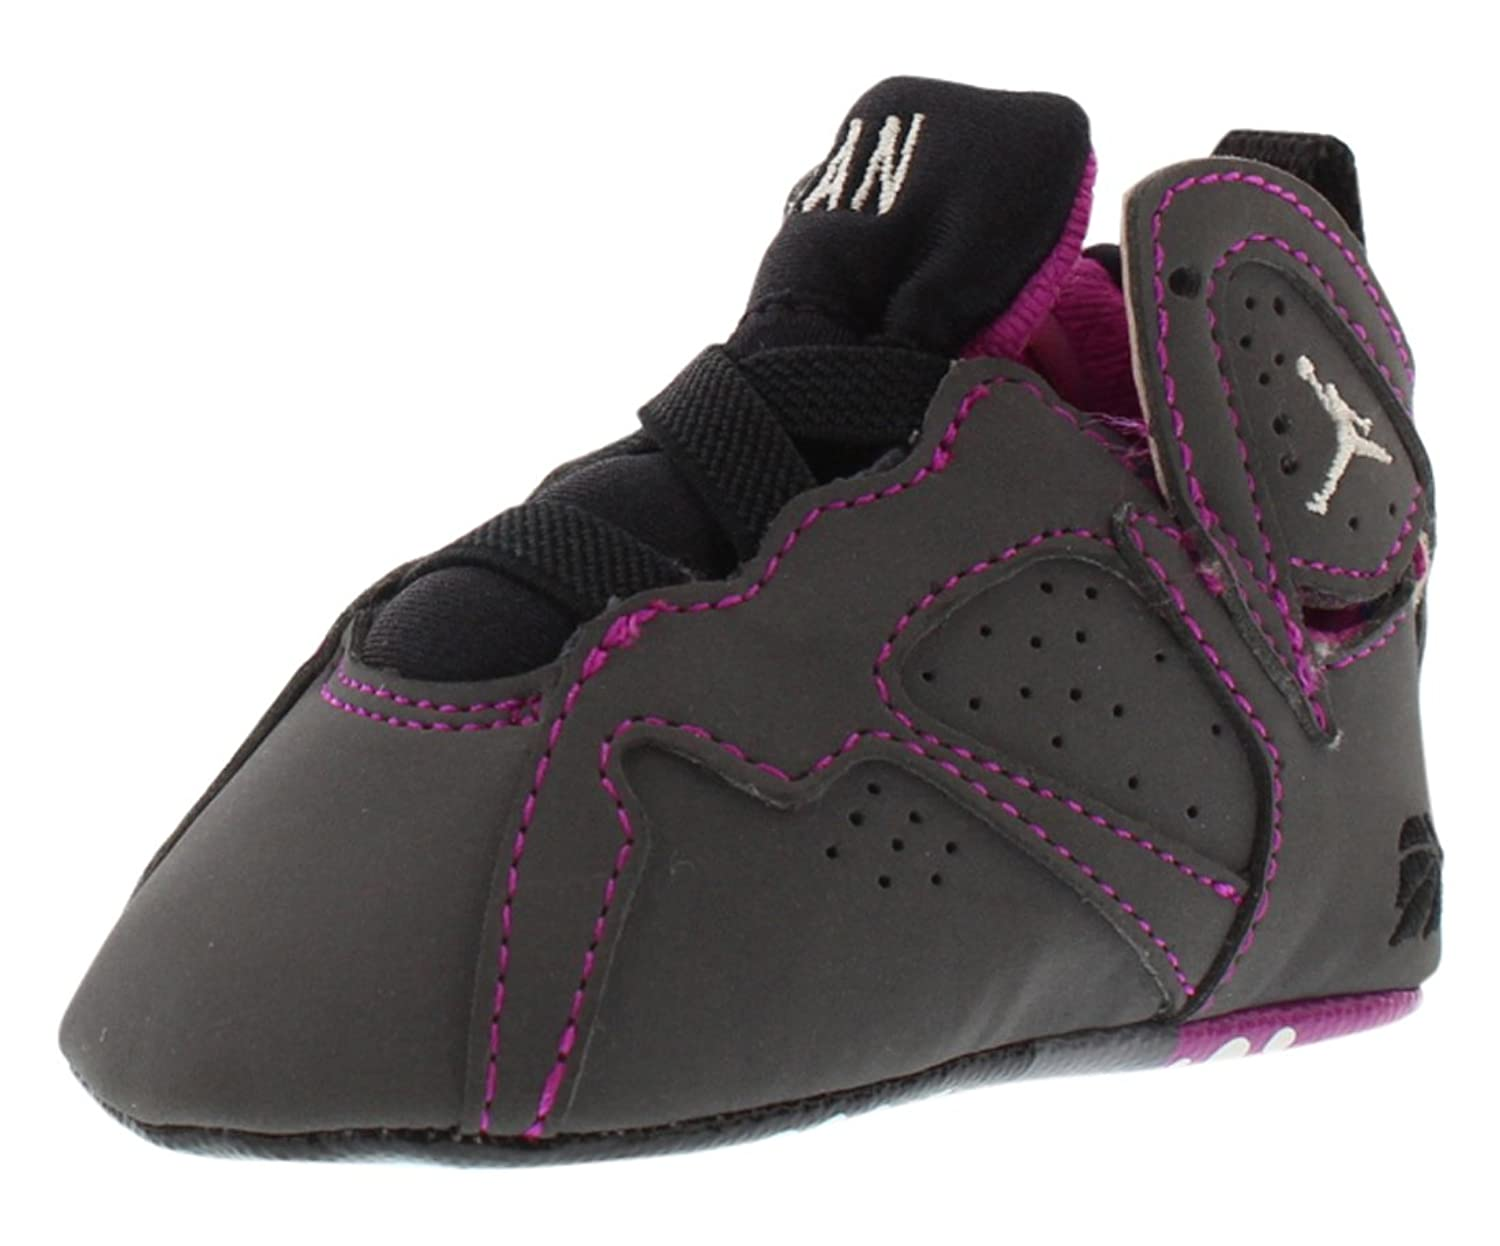 san francisco 5efb1 fad69 ... netherlands amazon girls air jordan 7 retro gift pack 30th anniversary  valentines day fuchsia grey shoes ...